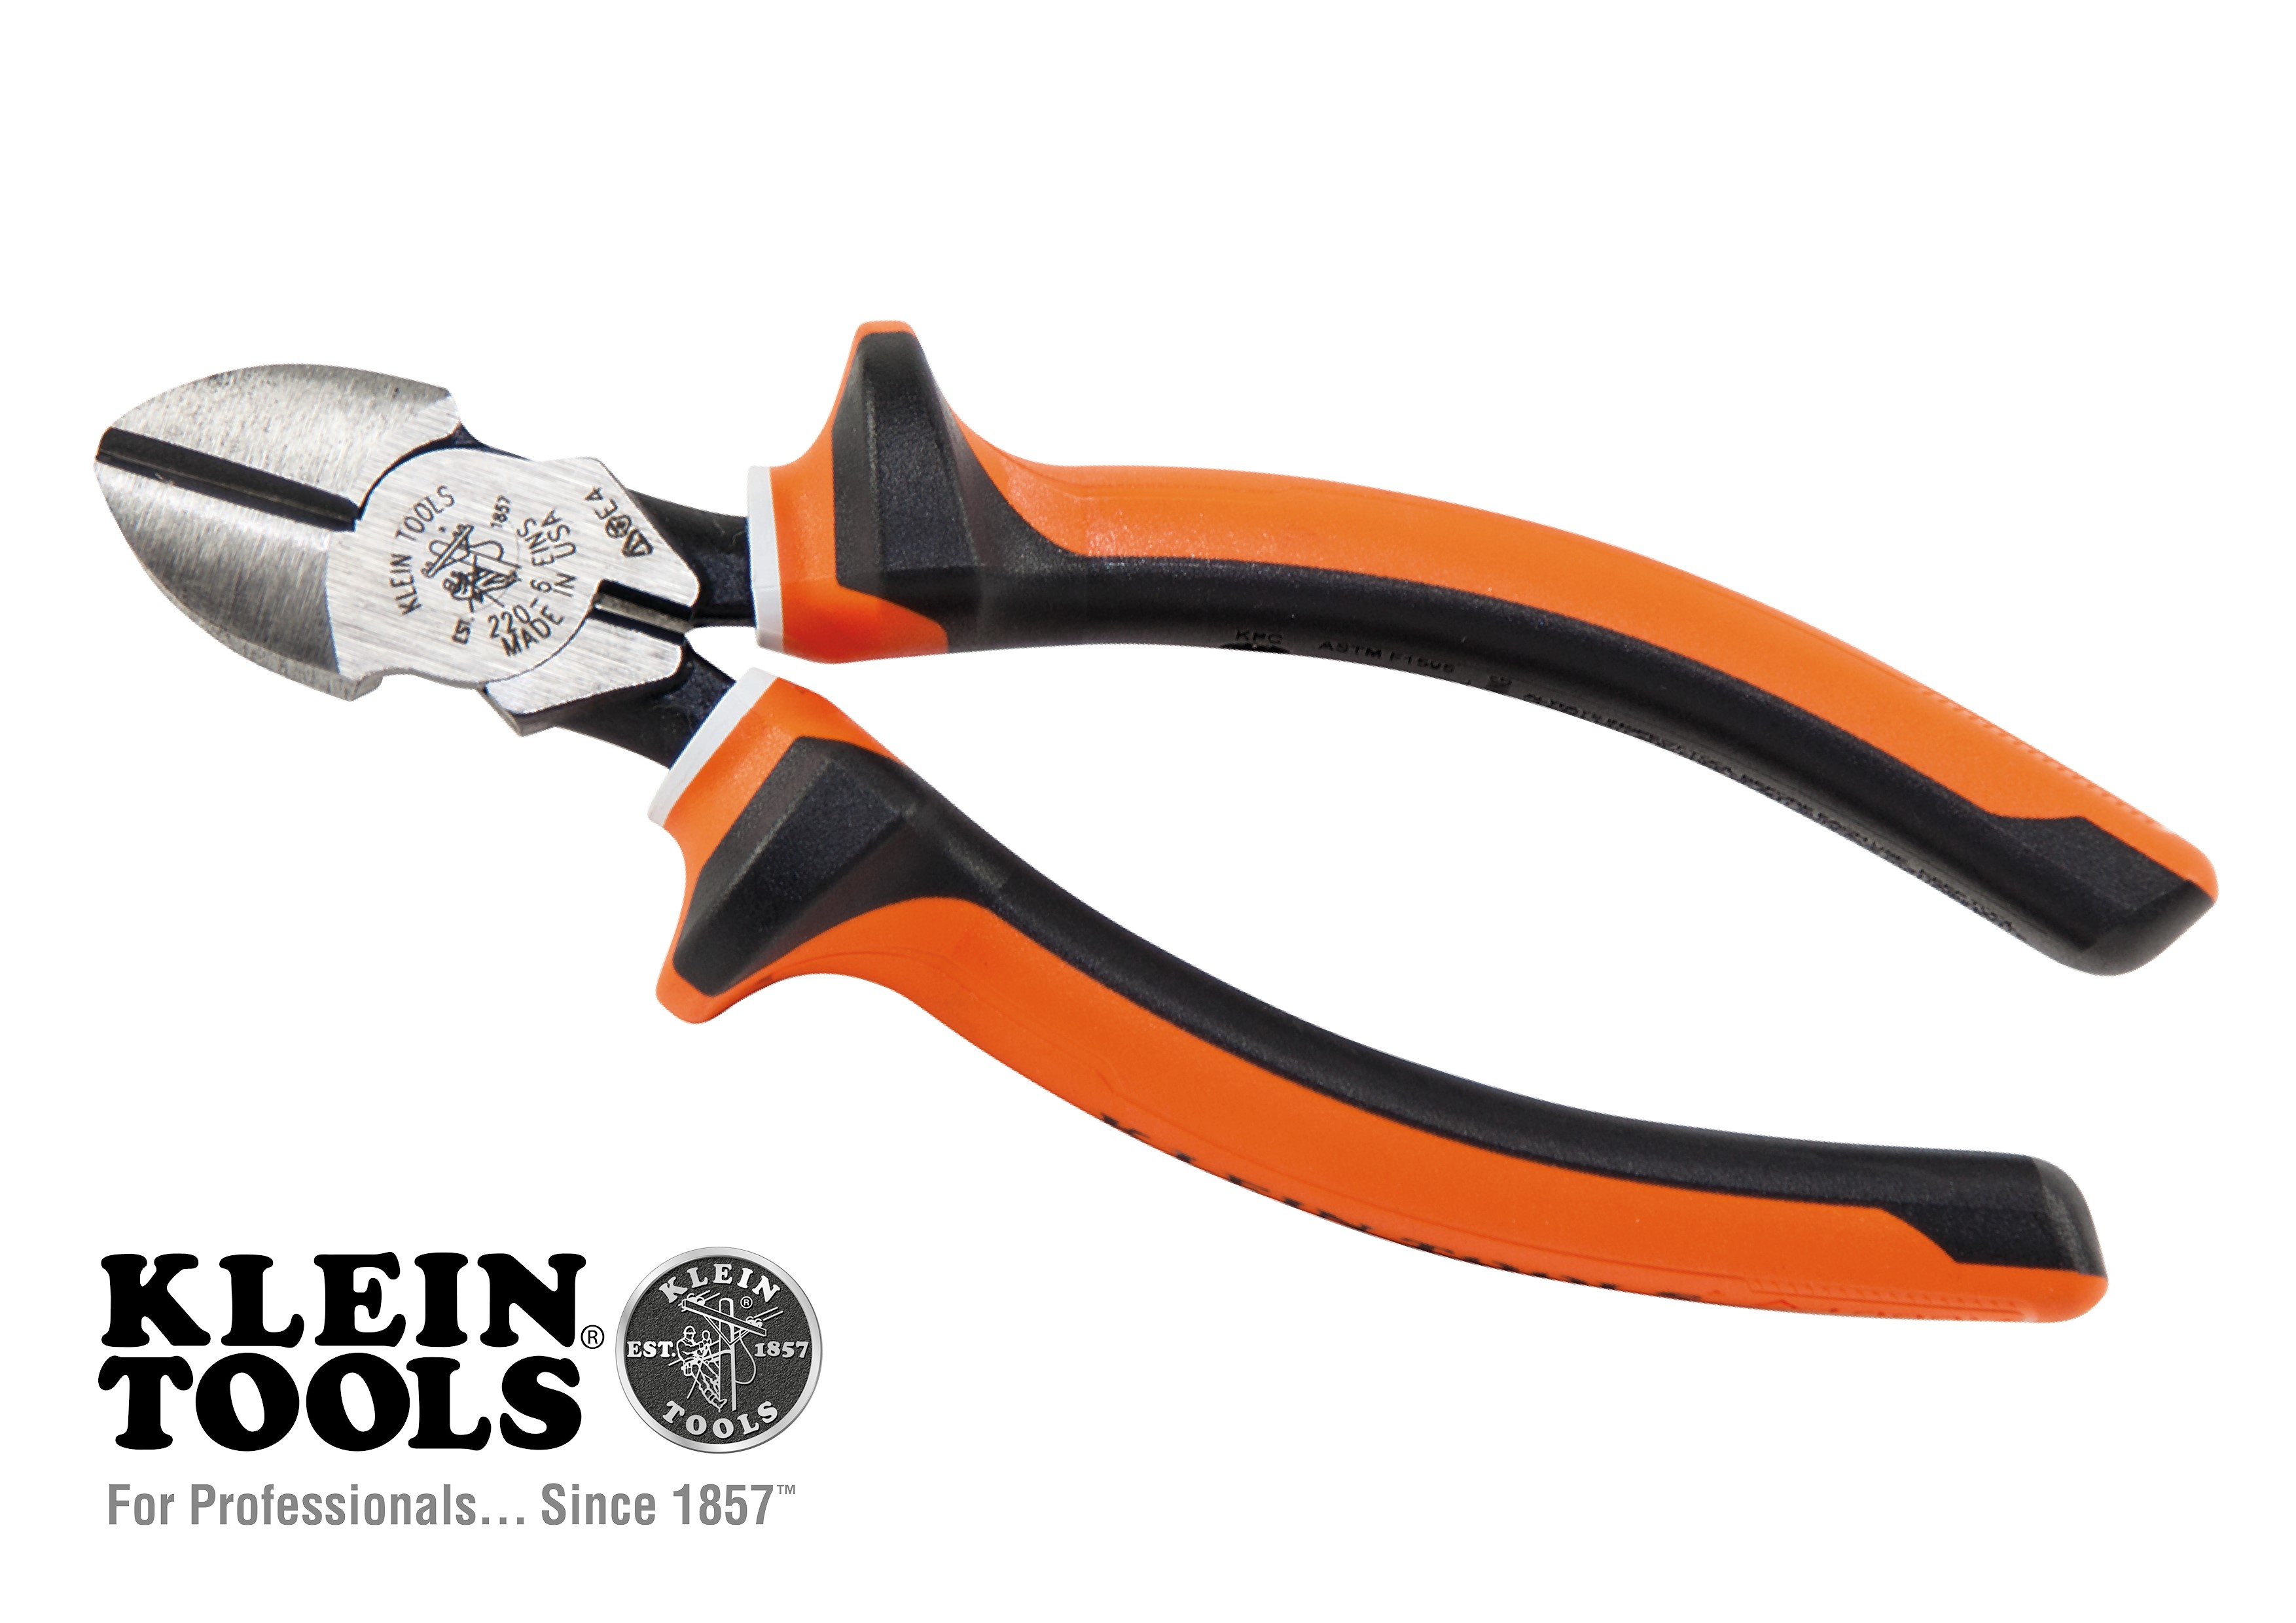 Klein Tools Launches 160mm Insulated Diagonal Cutters